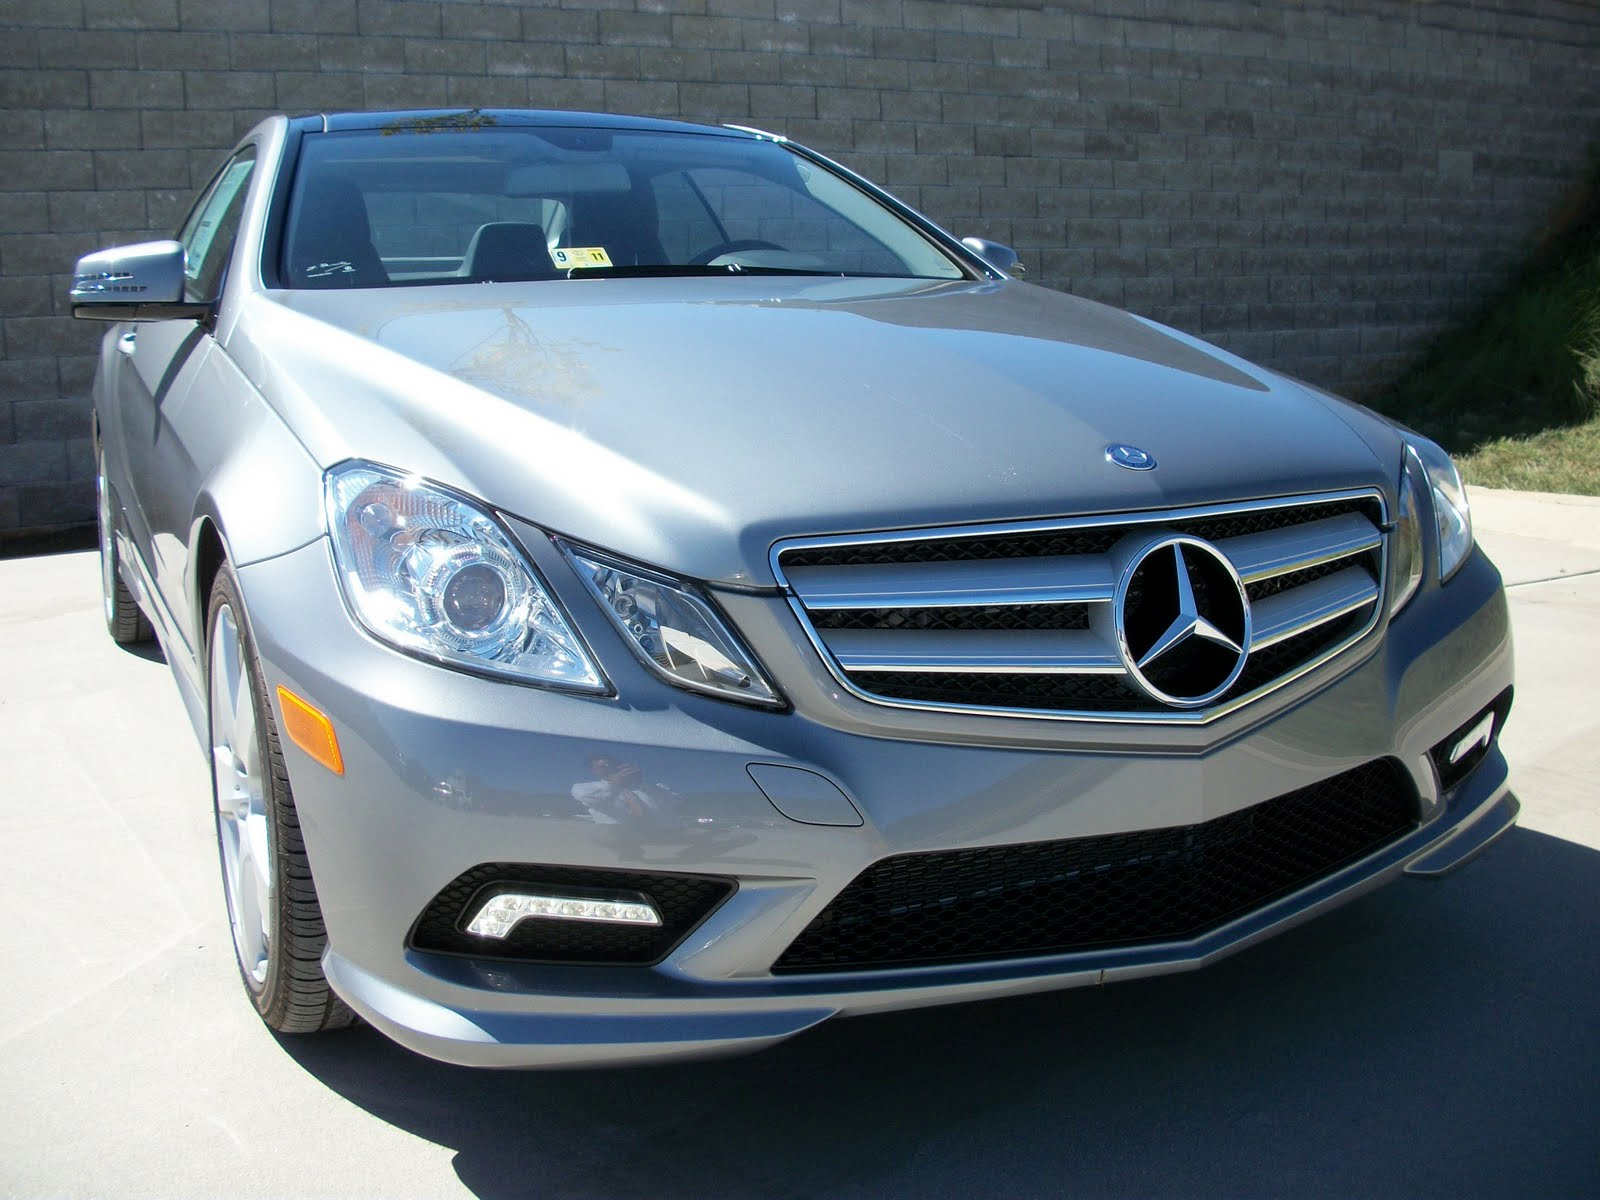 2011 mercedes benz e550 coupe i take pictures of cars. Black Bedroom Furniture Sets. Home Design Ideas